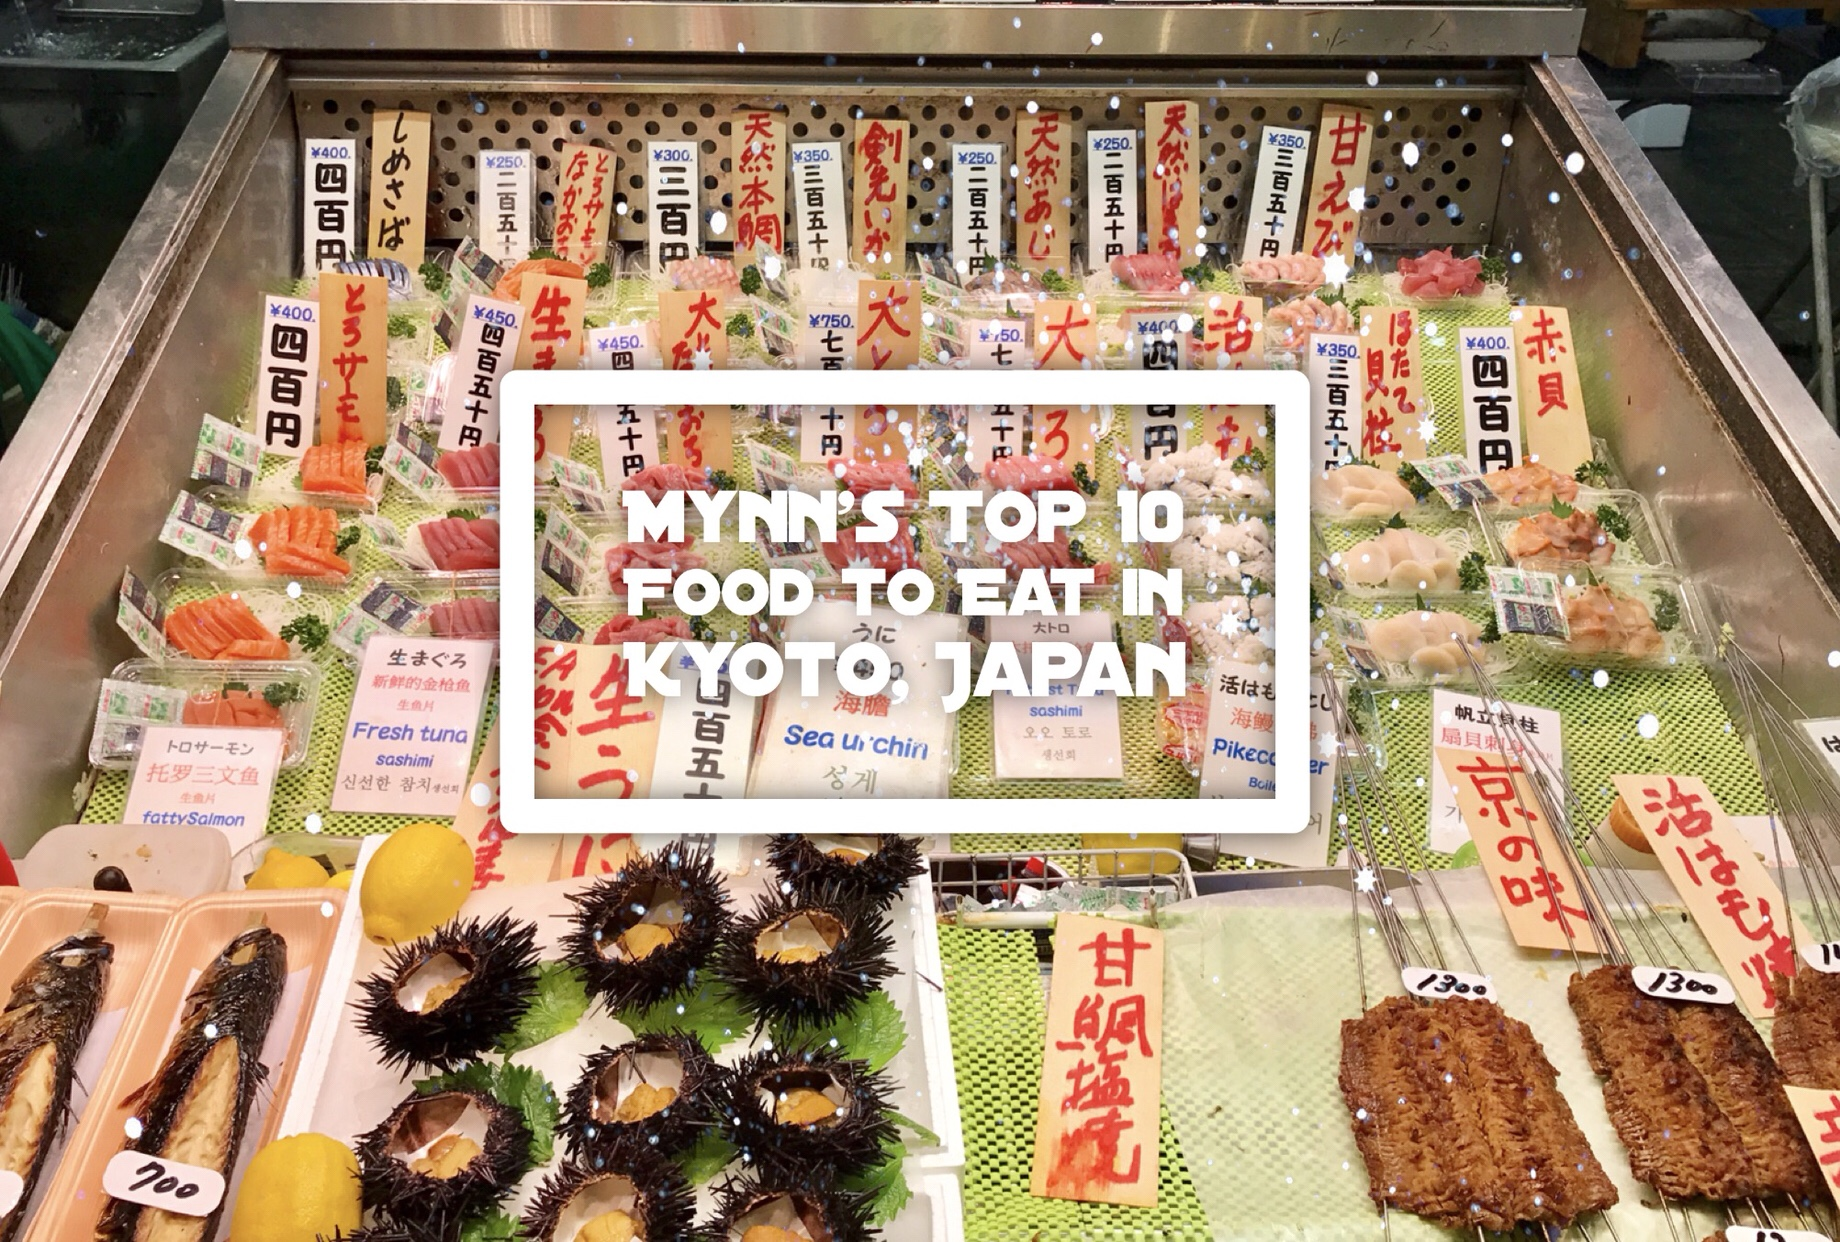 Mynn's Top 10 Food to Eat in Kyoto, Japan